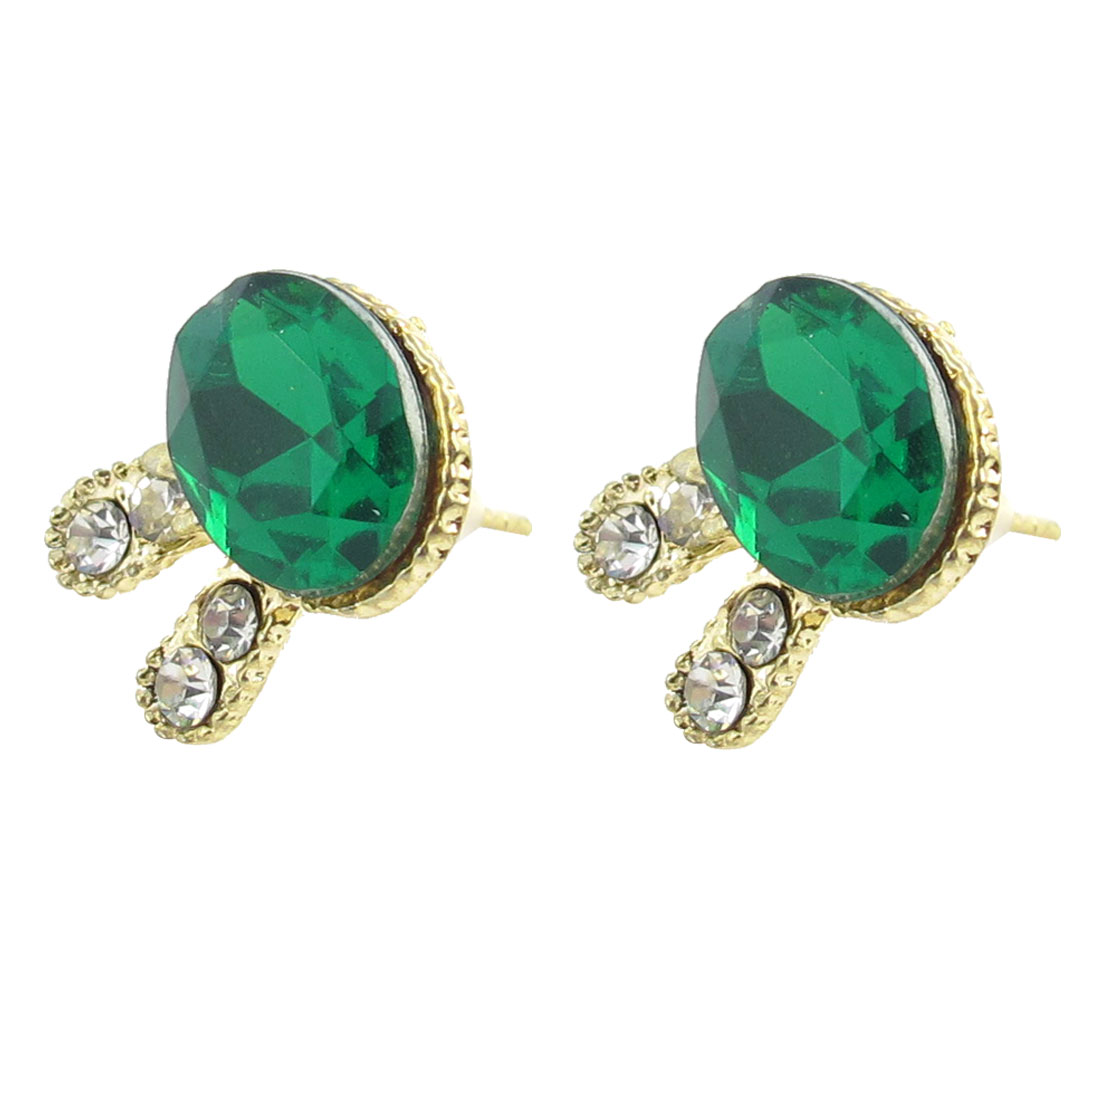 Pair Green Faux Crystal Inlaid Rabbit Design Earring Studs for Ladies